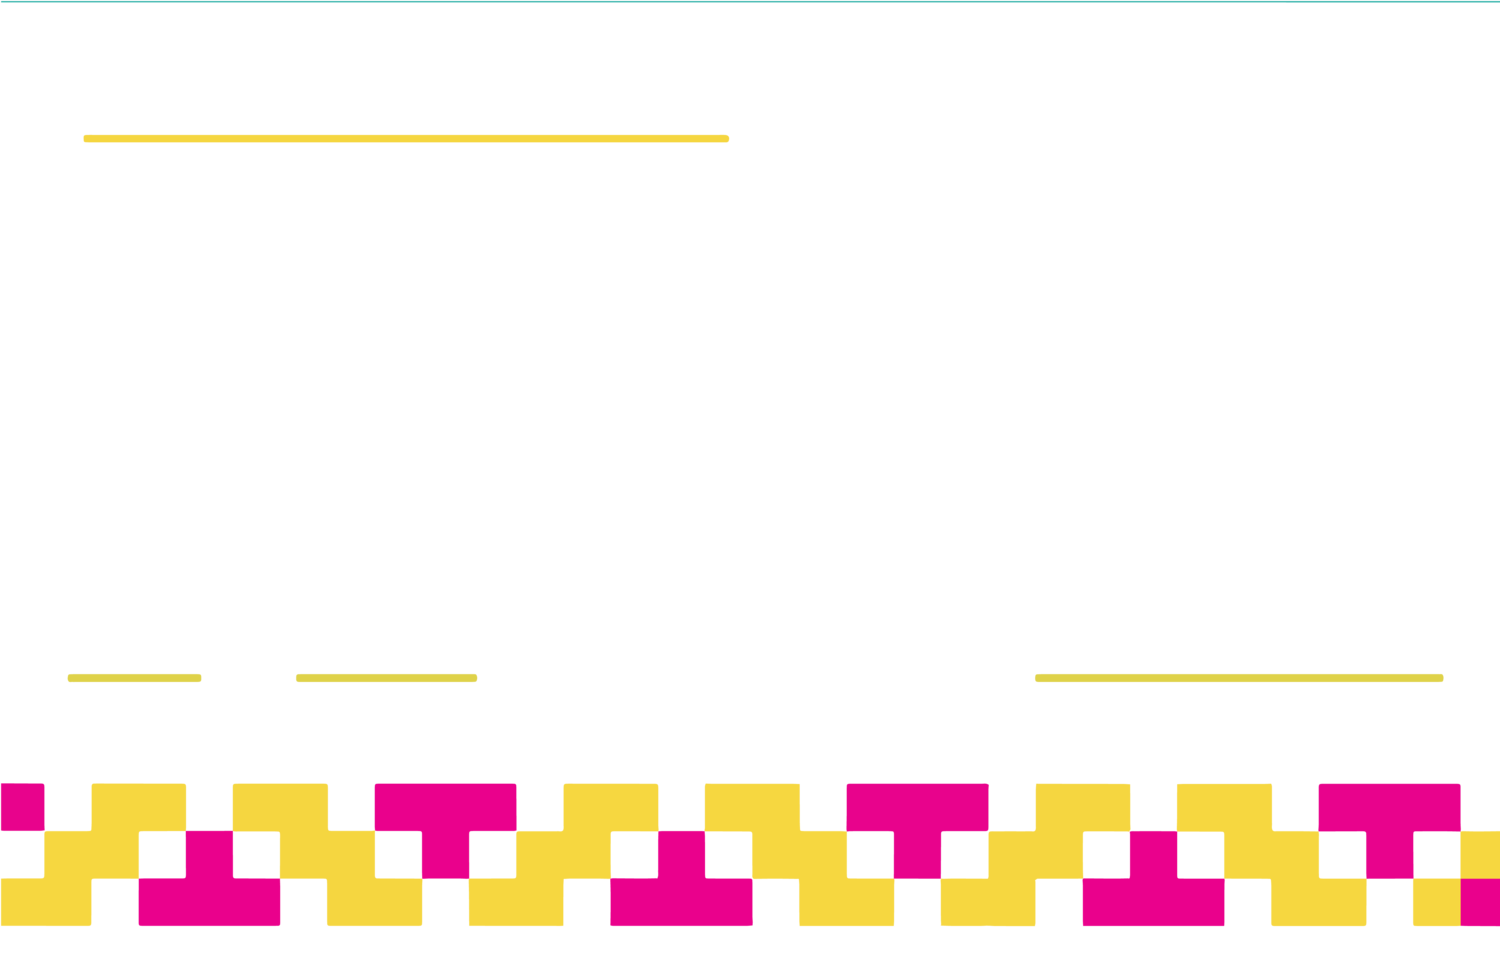 Mary Anne Quiroz for Ward 7